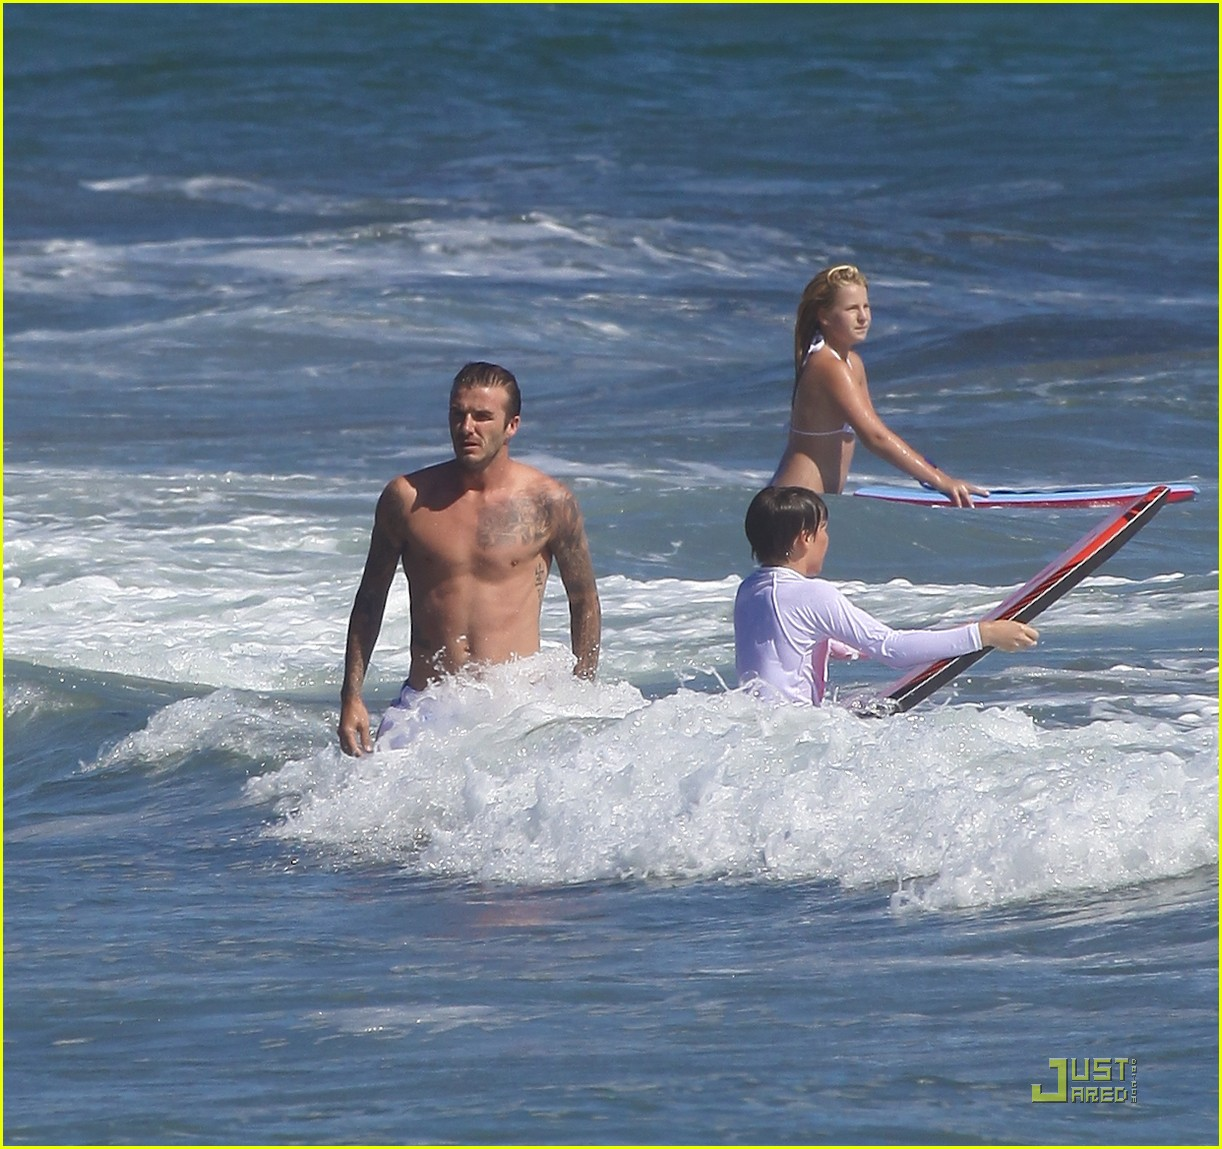 david beckham shirtless surfing  182561571